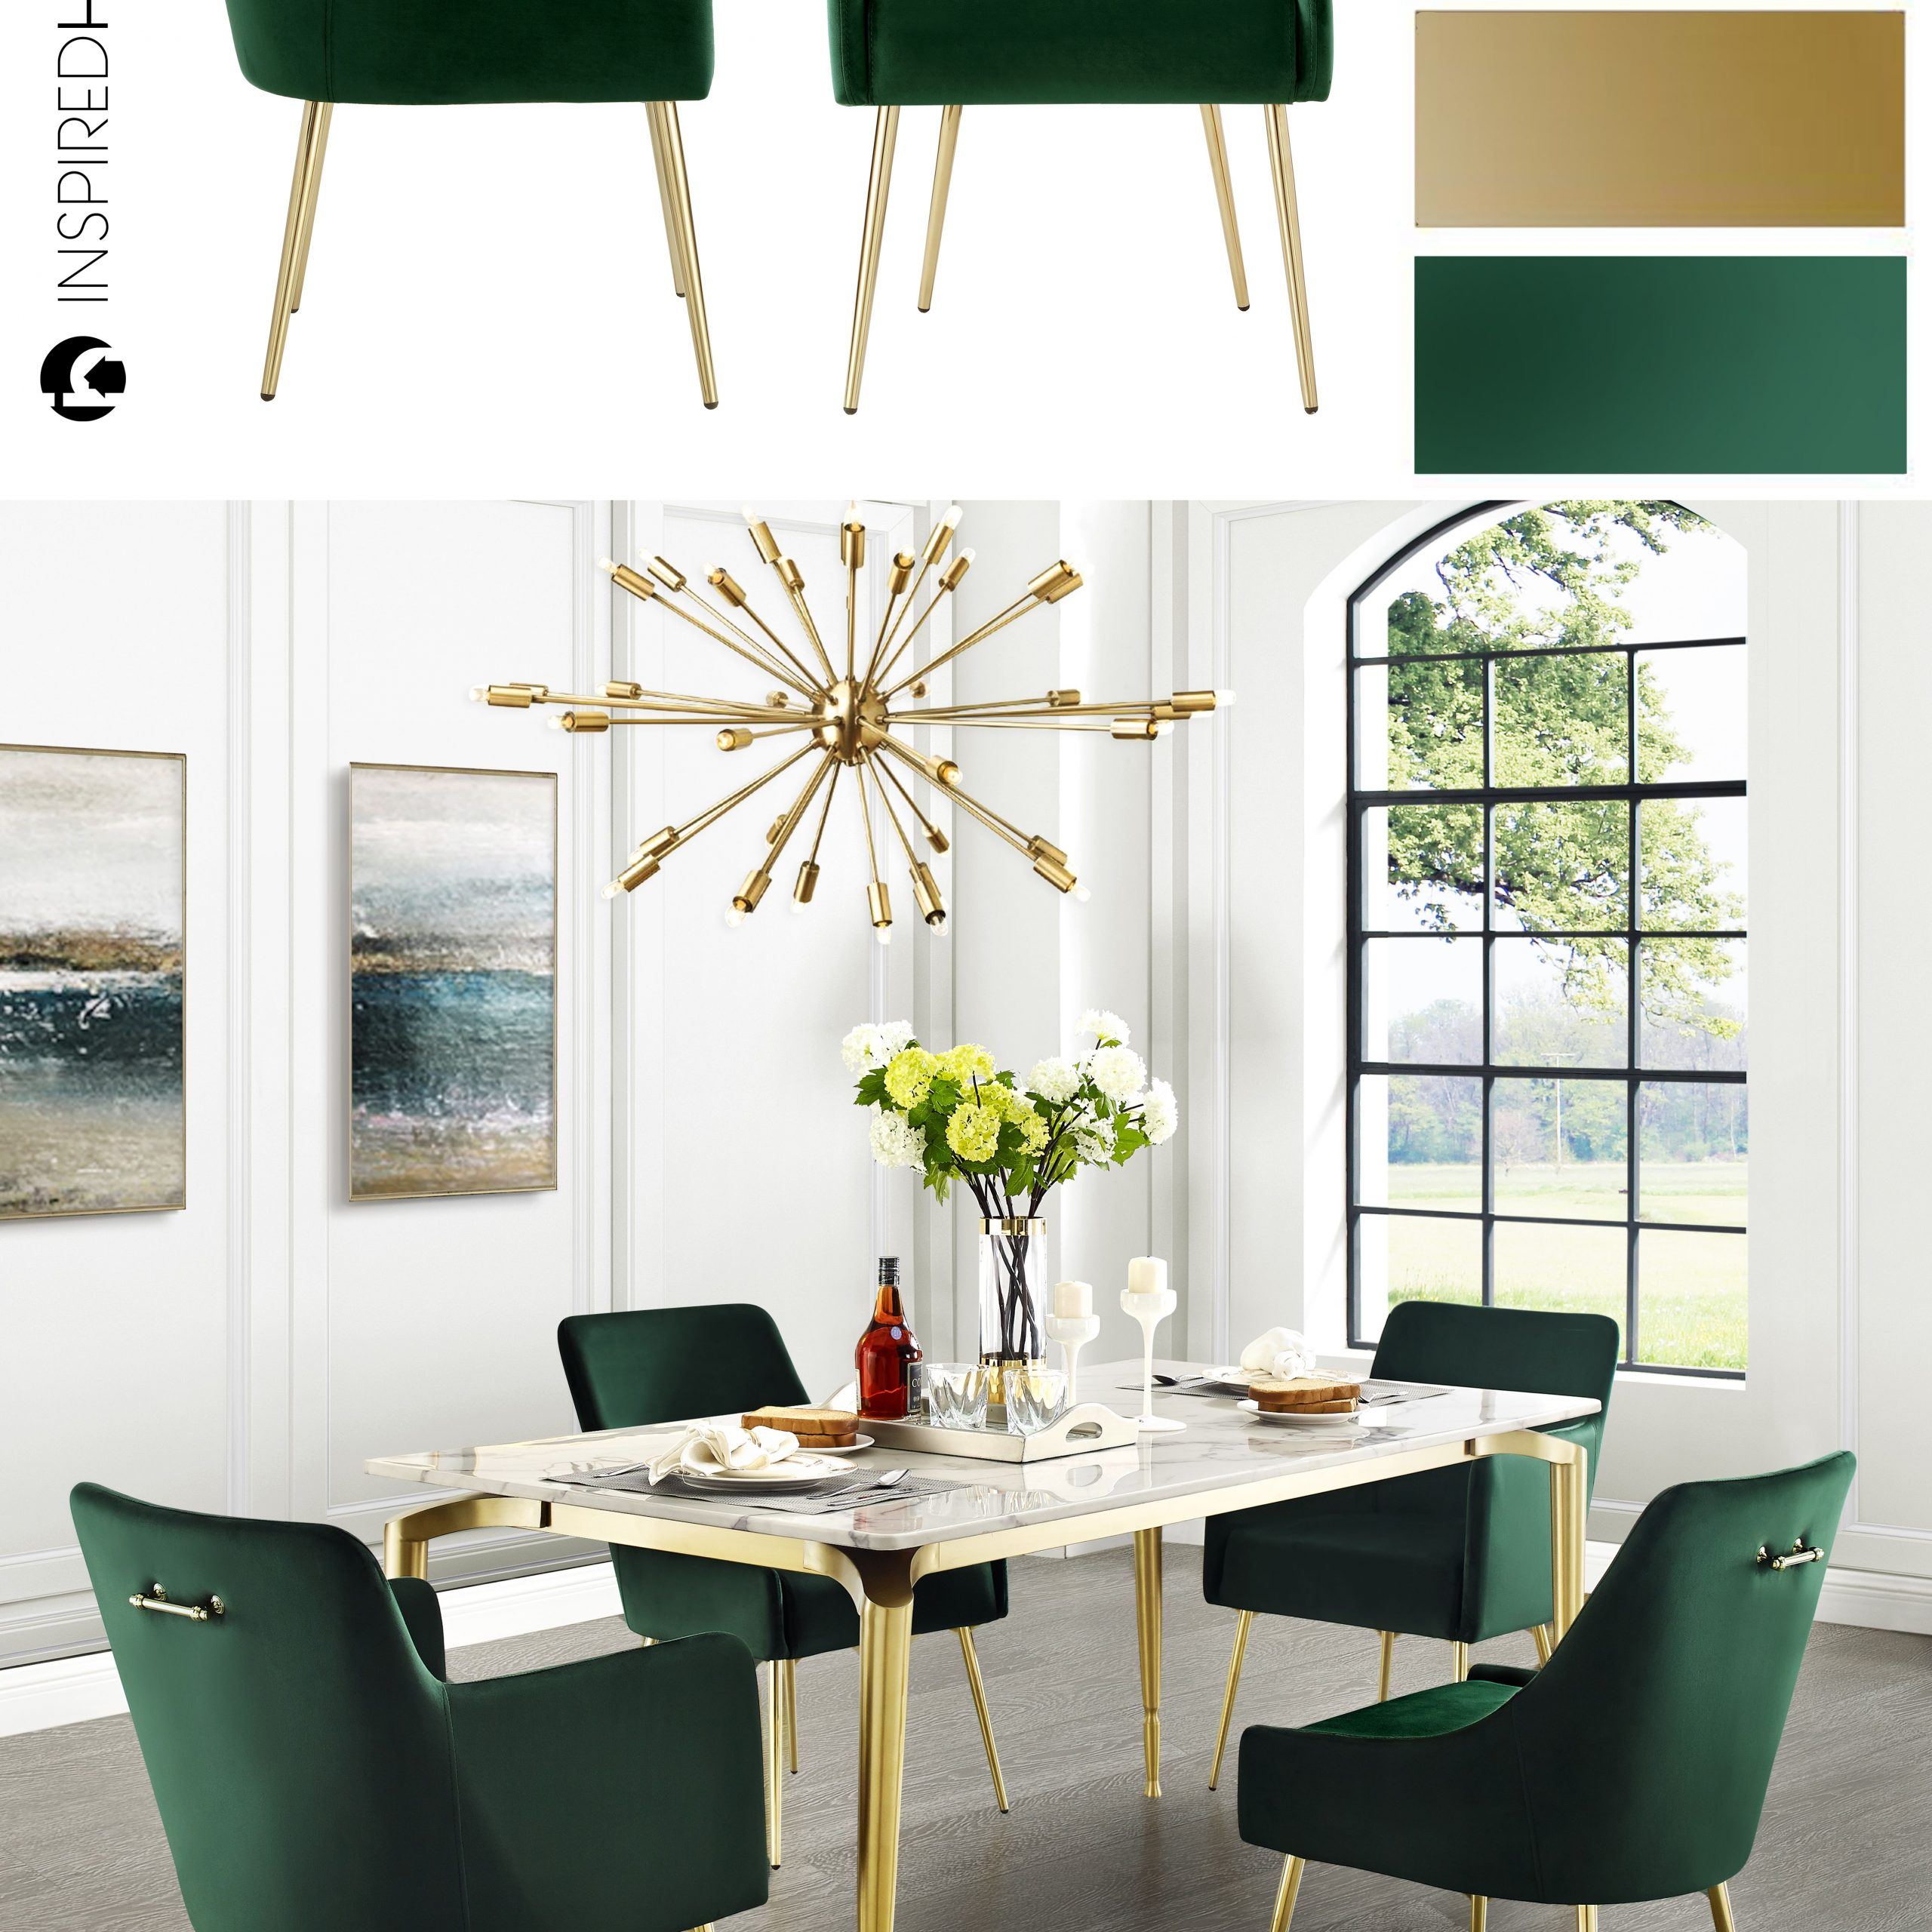 dining room table with green chairs